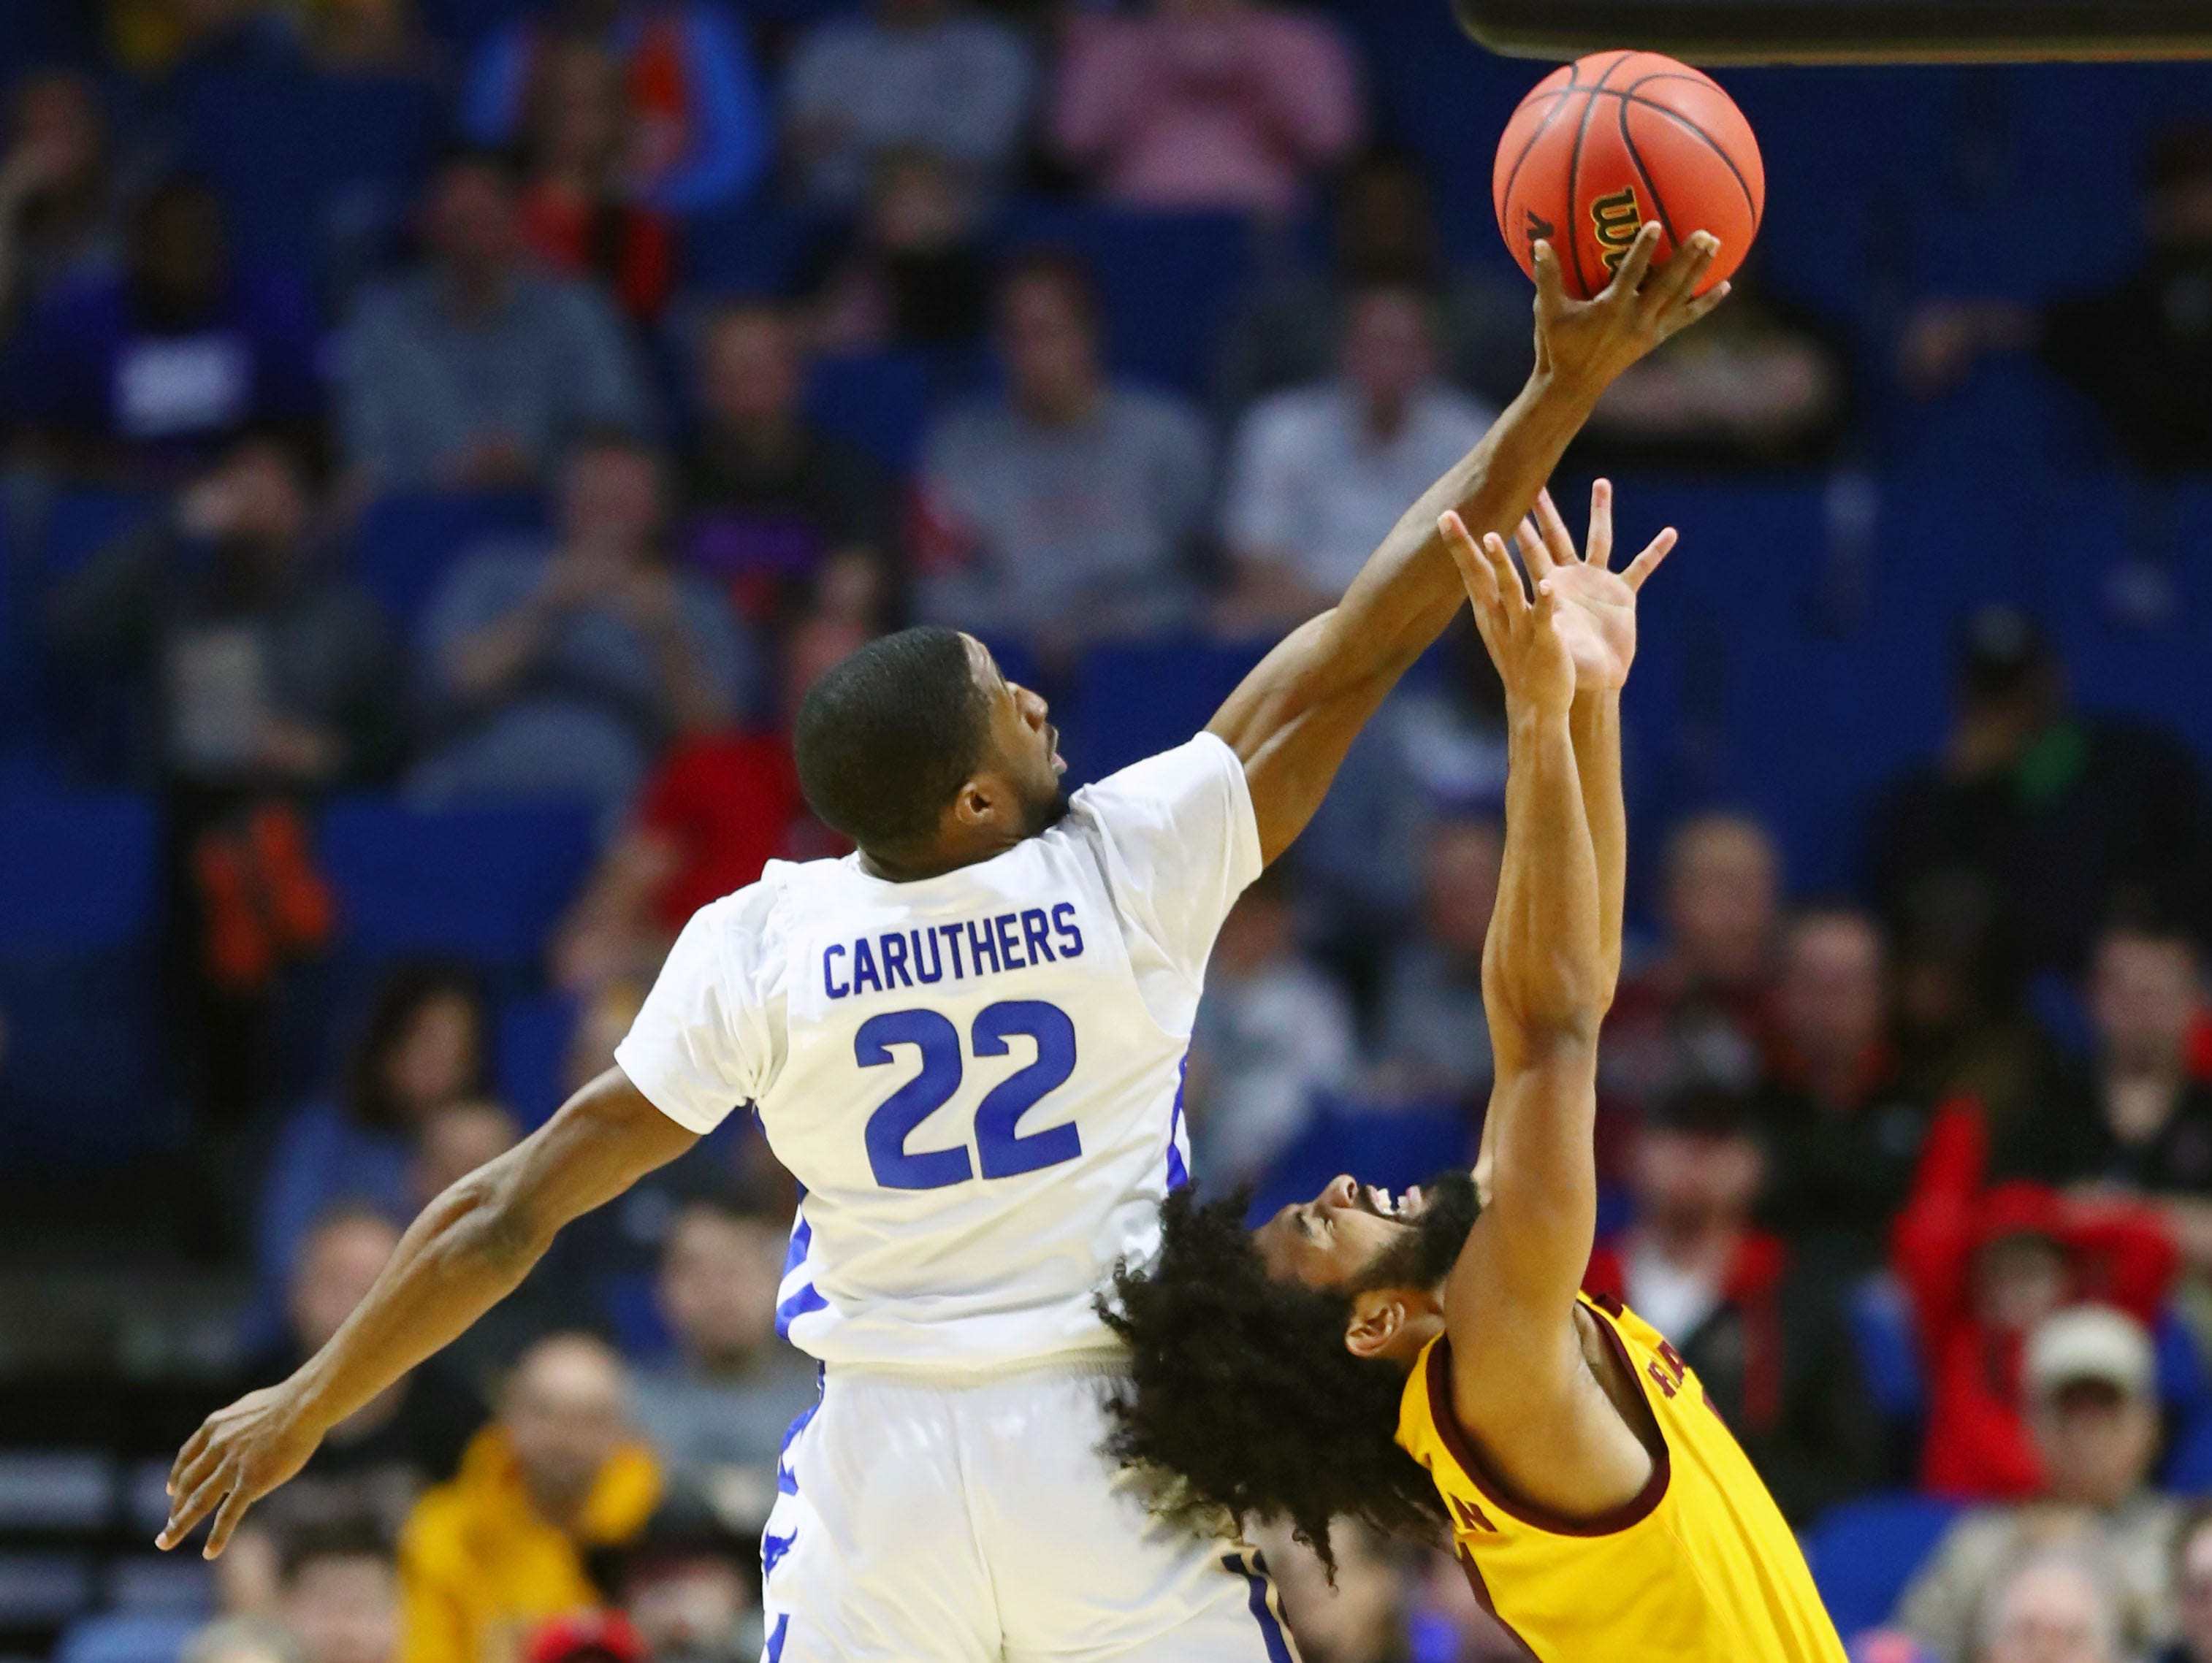 Mar 22, 2019; Tulsa, OK, USA; Buffalo Bulls guard Dontay Caruthers (22) reaches for the ball above Arizona State Sun Devils guard Remy Martin (1) during the first half in the first round of the 2019 NCAA Tournament at BOK Center. Mandatory Credit: Mark J. Rebilas-USA TODAY Sports